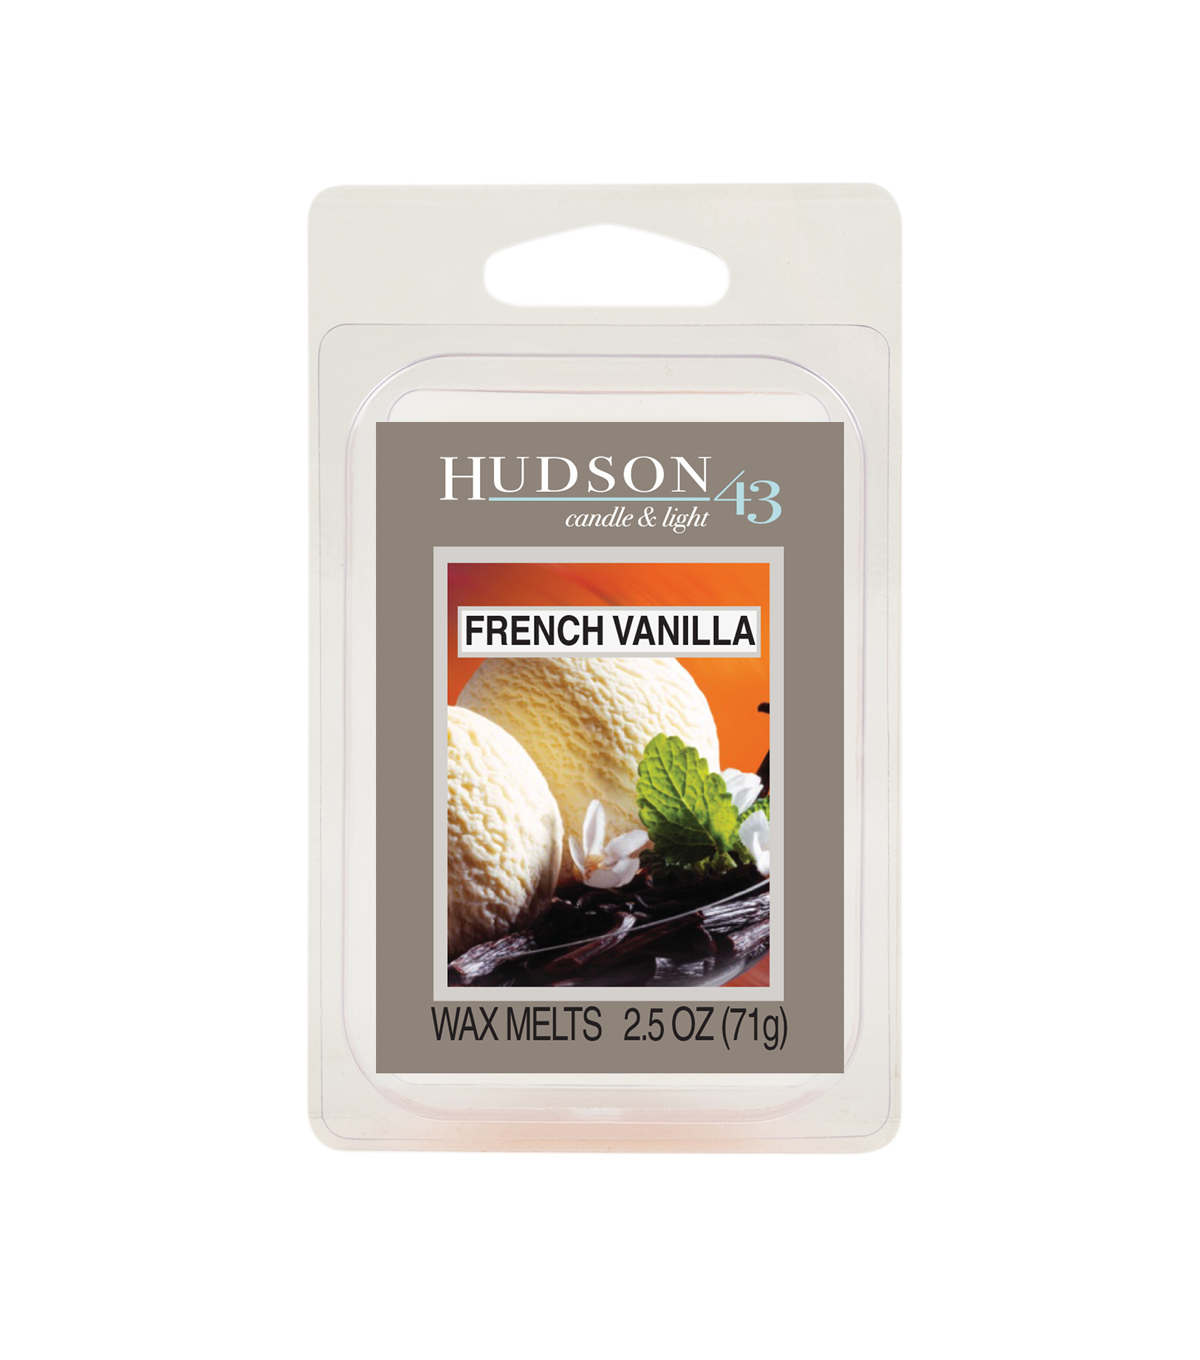 Hudson 43™ Candle & Light Collection Wax Melt-French Vanilla